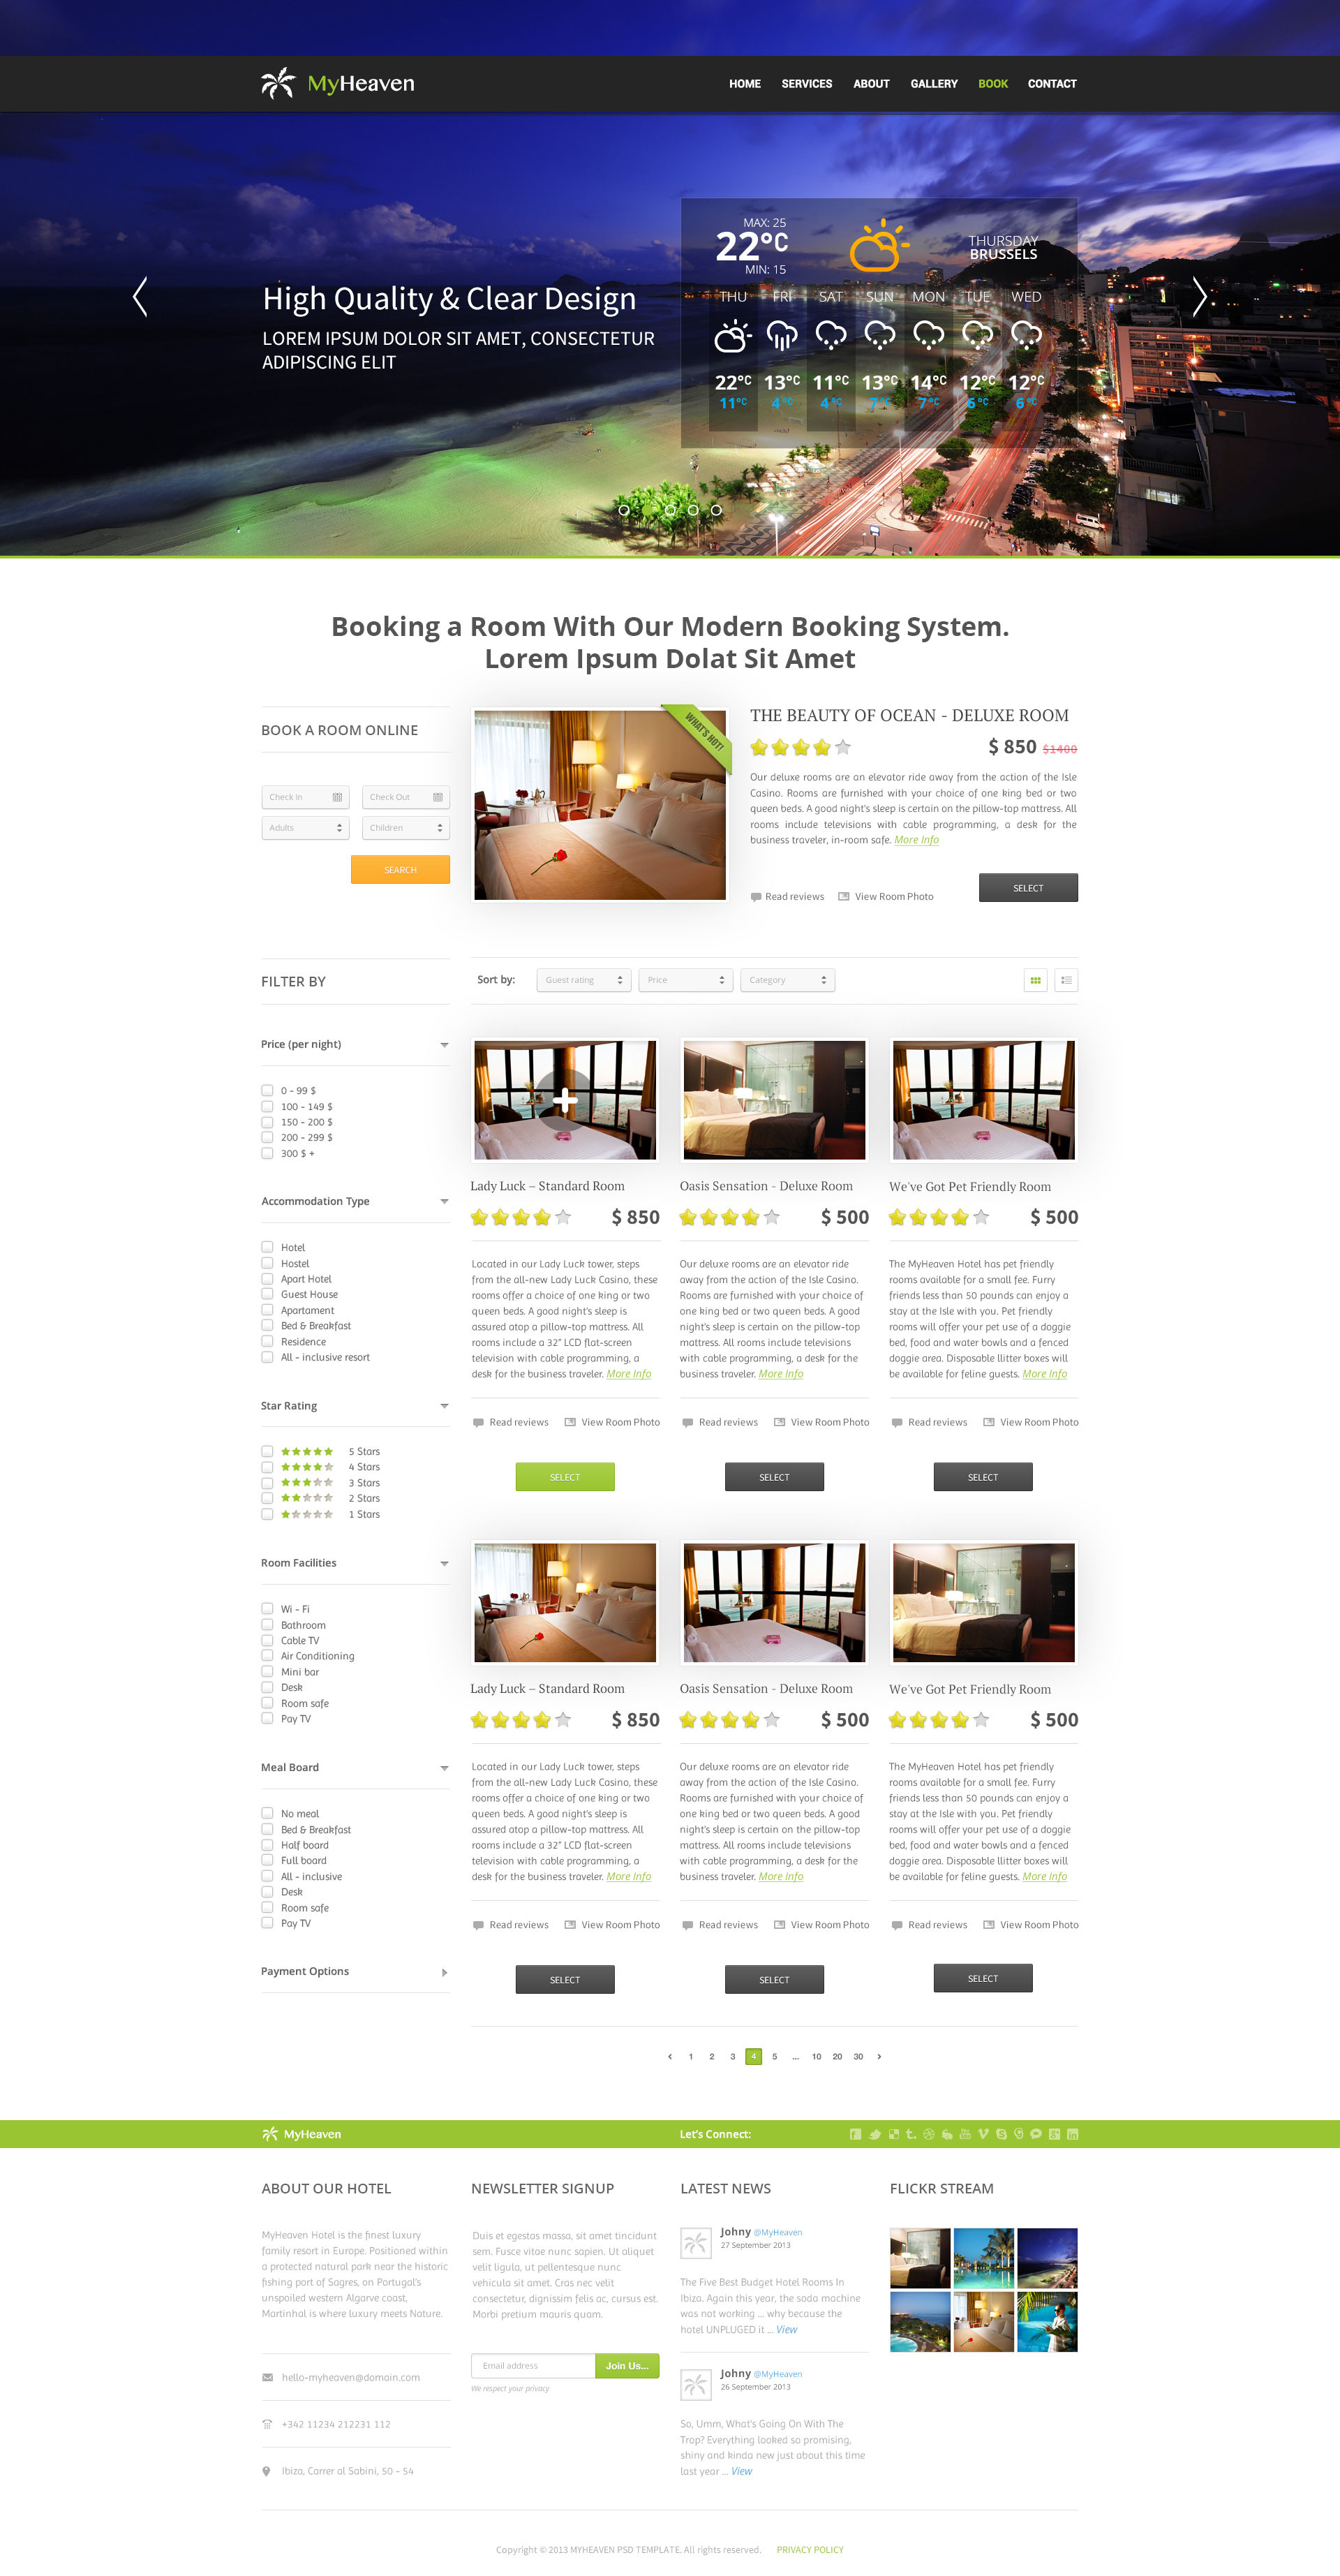 My Heaven - Online Booking PSD Template - Desktop - Search Results Page